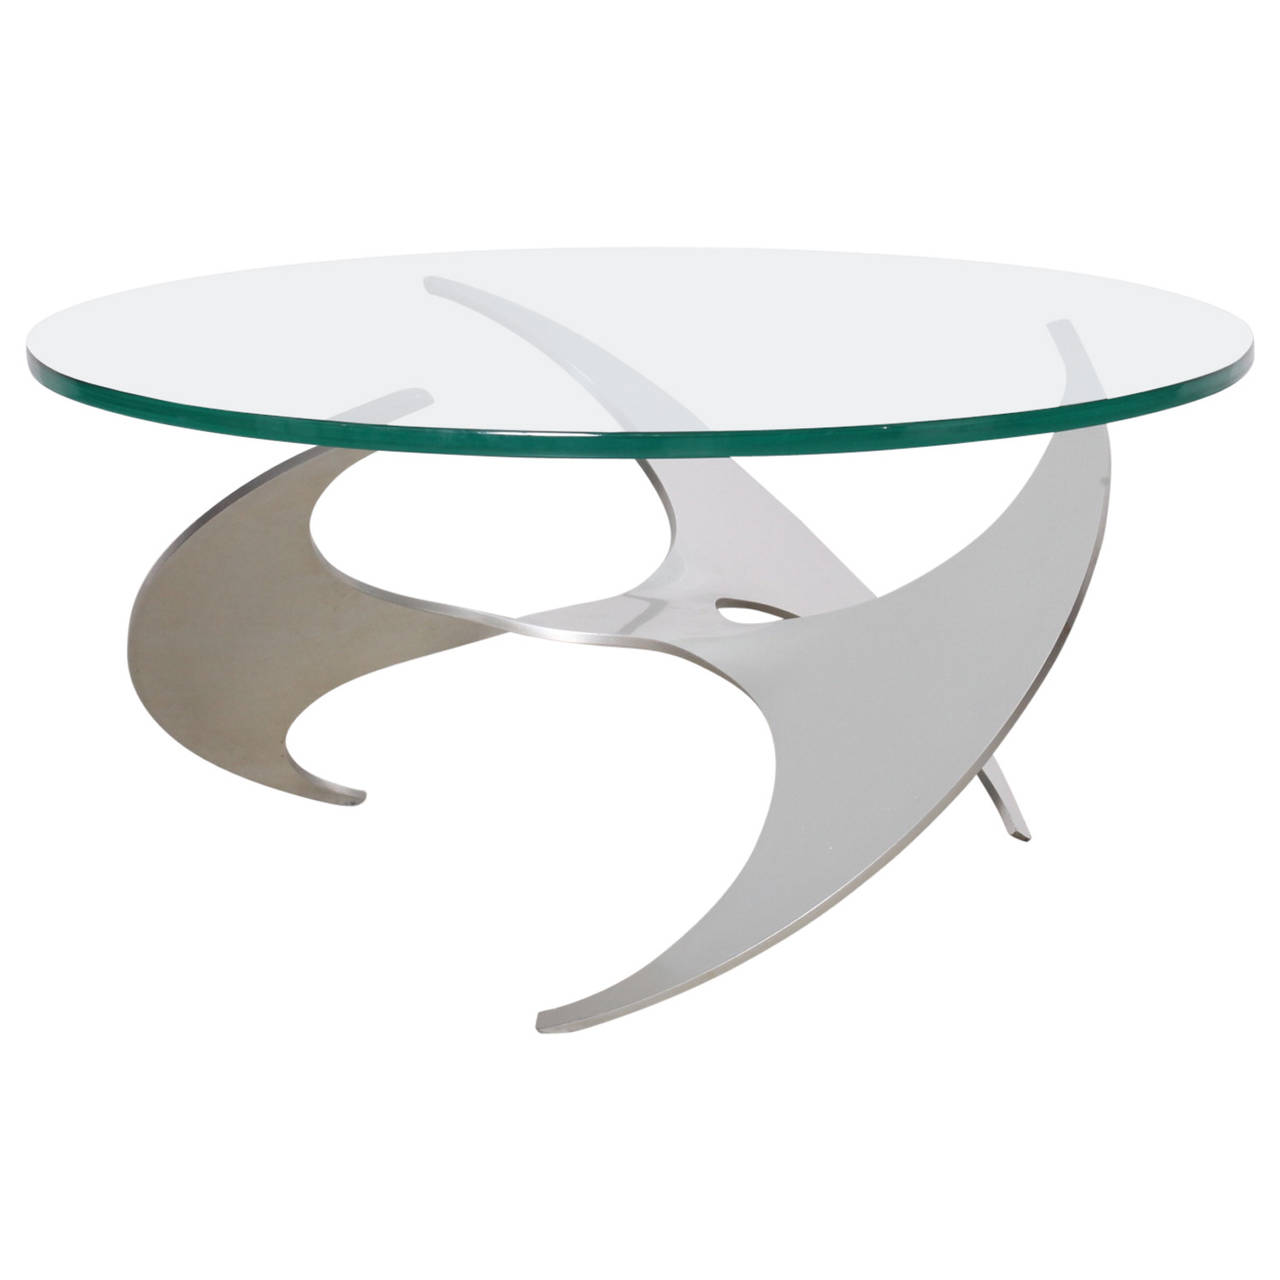 Aluminum and Glass Propeller Coffee Table by Knut Hesterberg for Ronald Schmitt